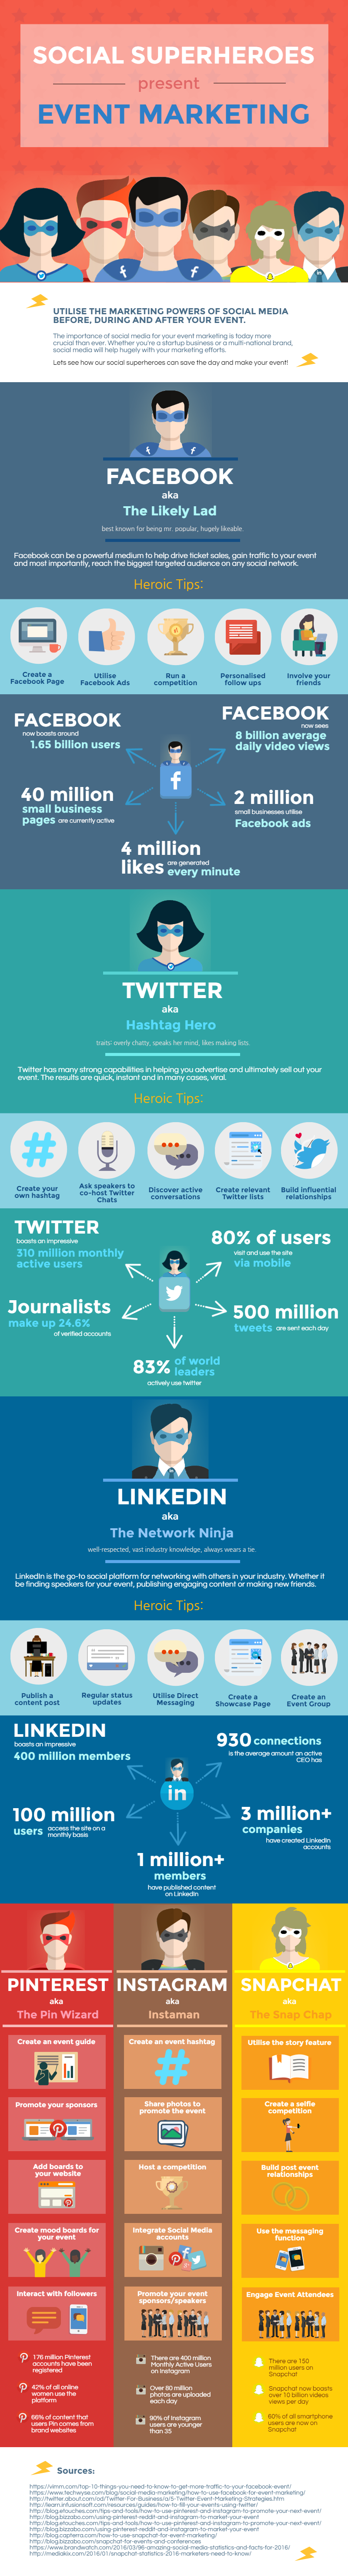 Social Superheroes Present: Event Marketing #infographic